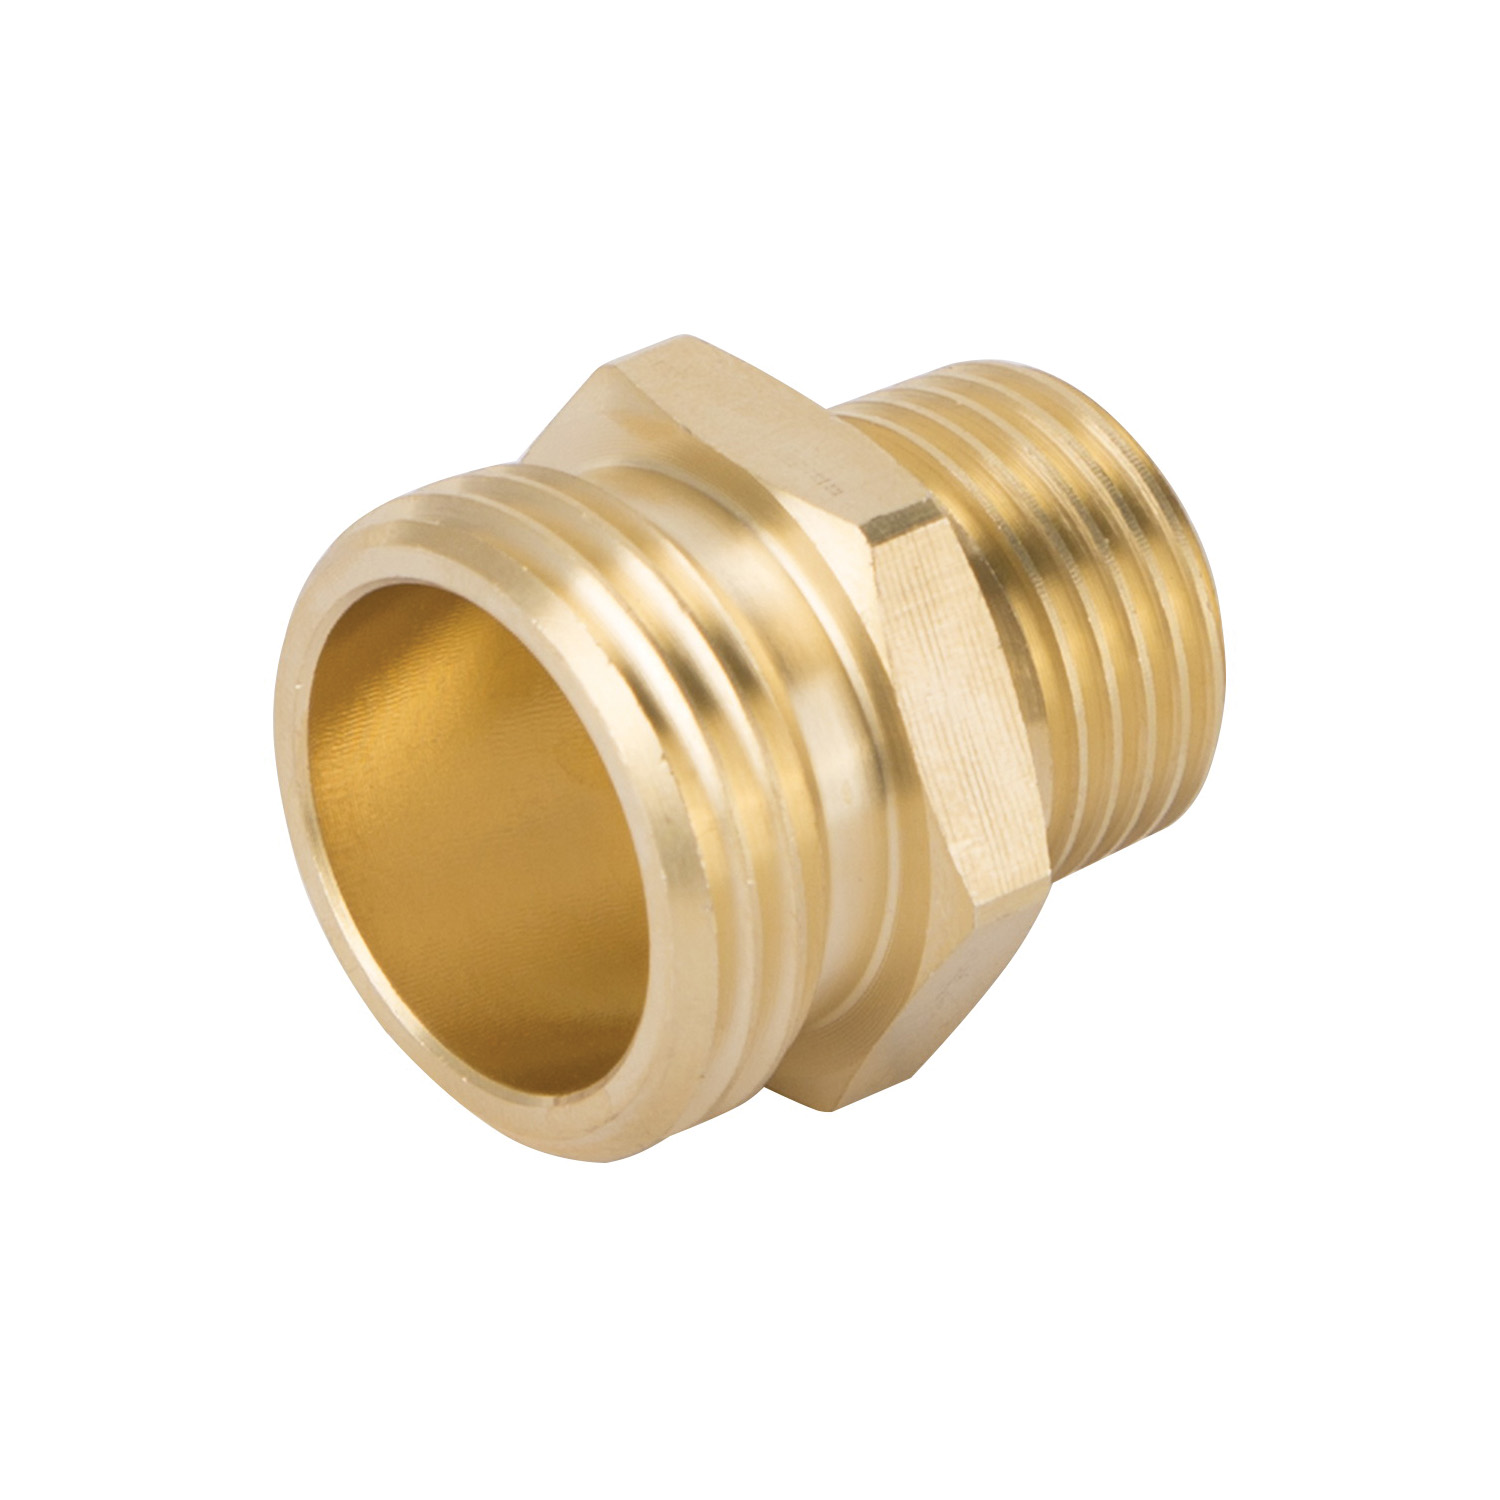 Picture of Landscapers Select GHADTRS-2 Hose Connector, 1/2 x 3/4 in, MNPT x MNH, Brass, Brass